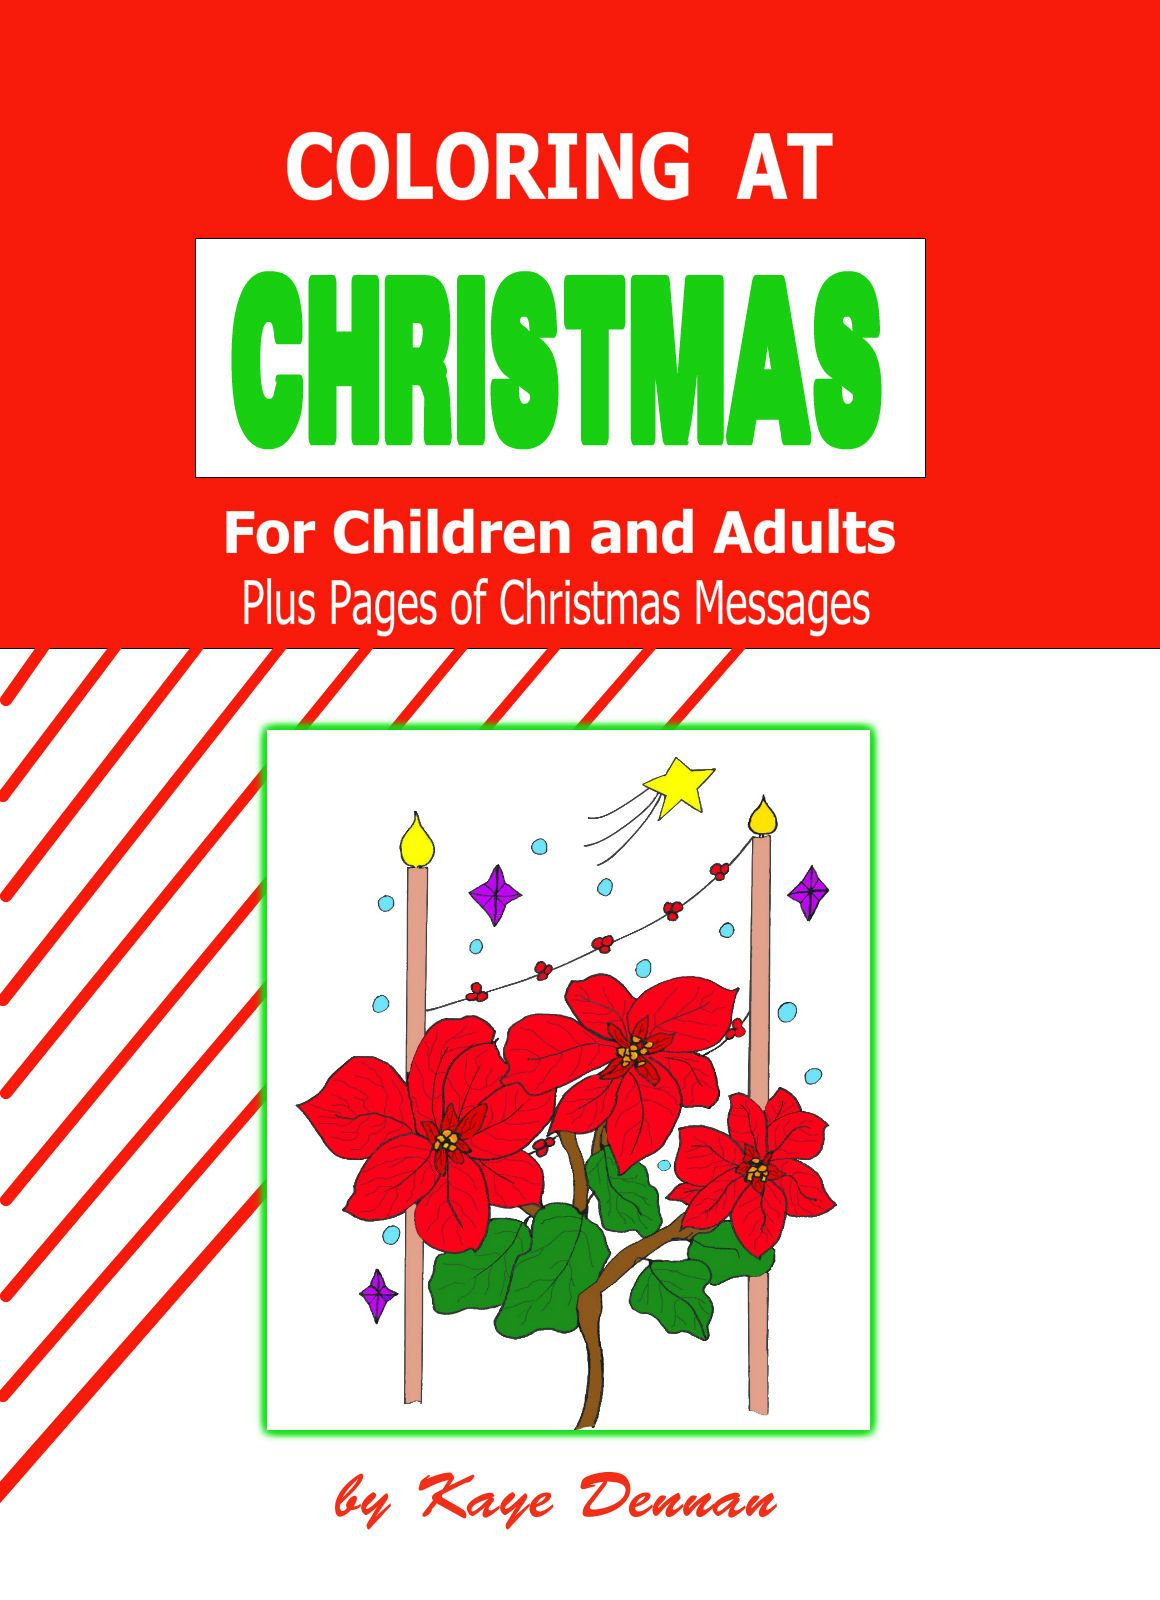 A lovely book full of coloring pages and Christmas messages ...